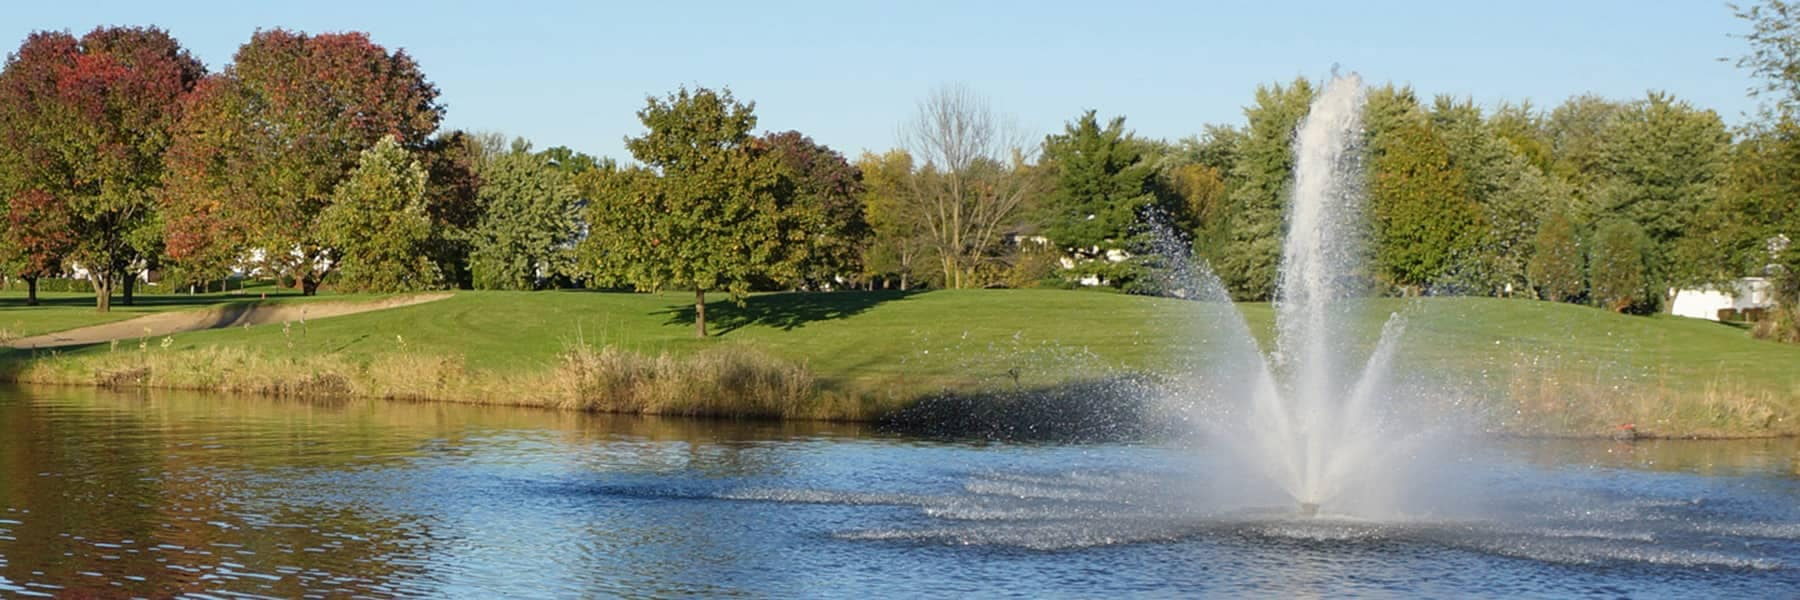 Boughton Ridge Golf Course Bolingbrook Illinois